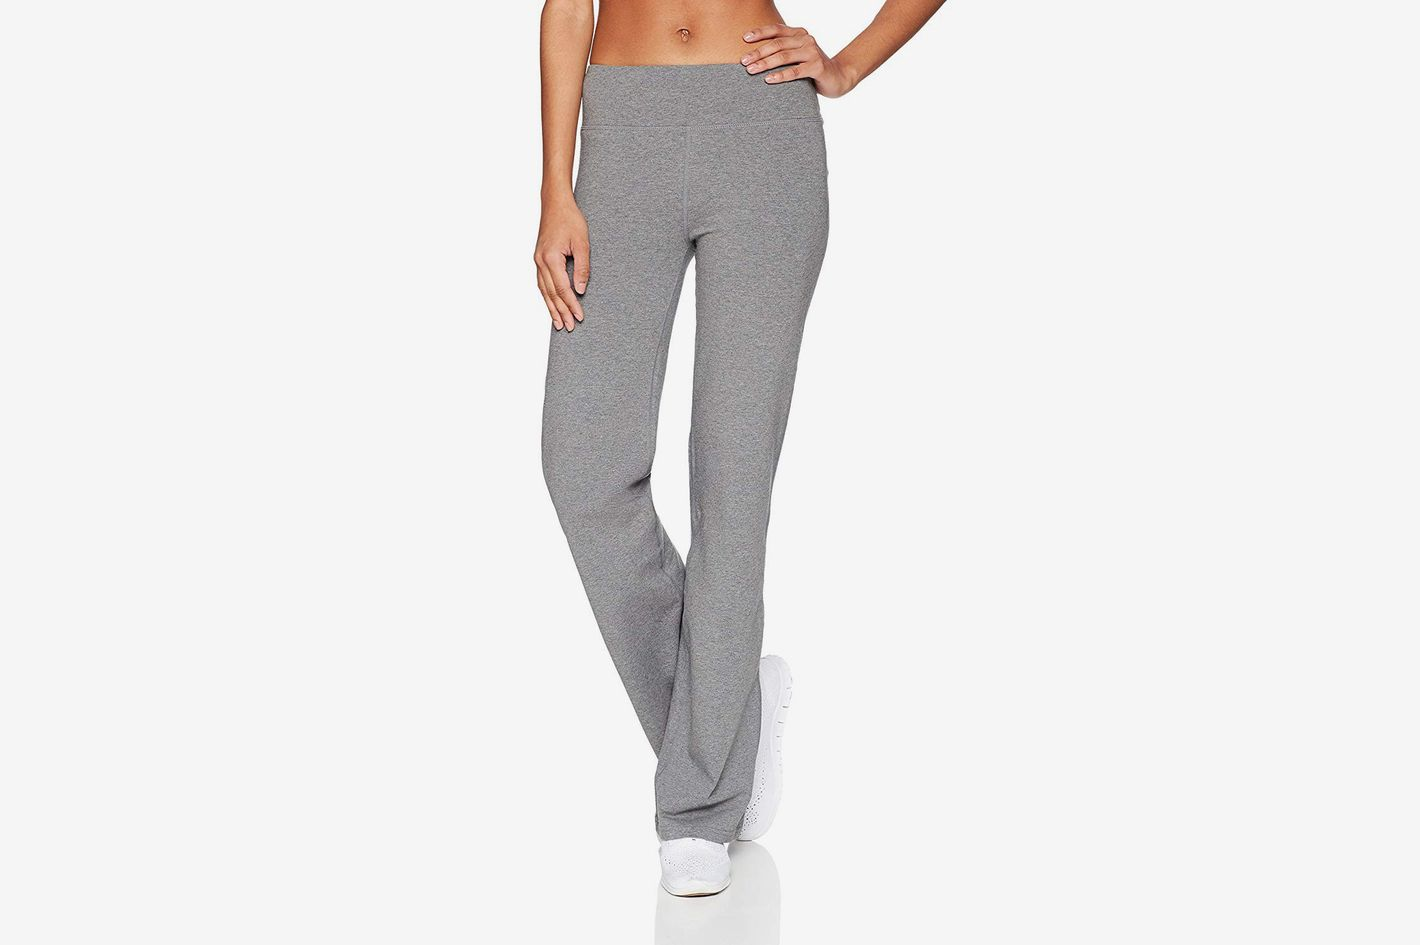 Starter Women's Performance Cotton Yoga Pants